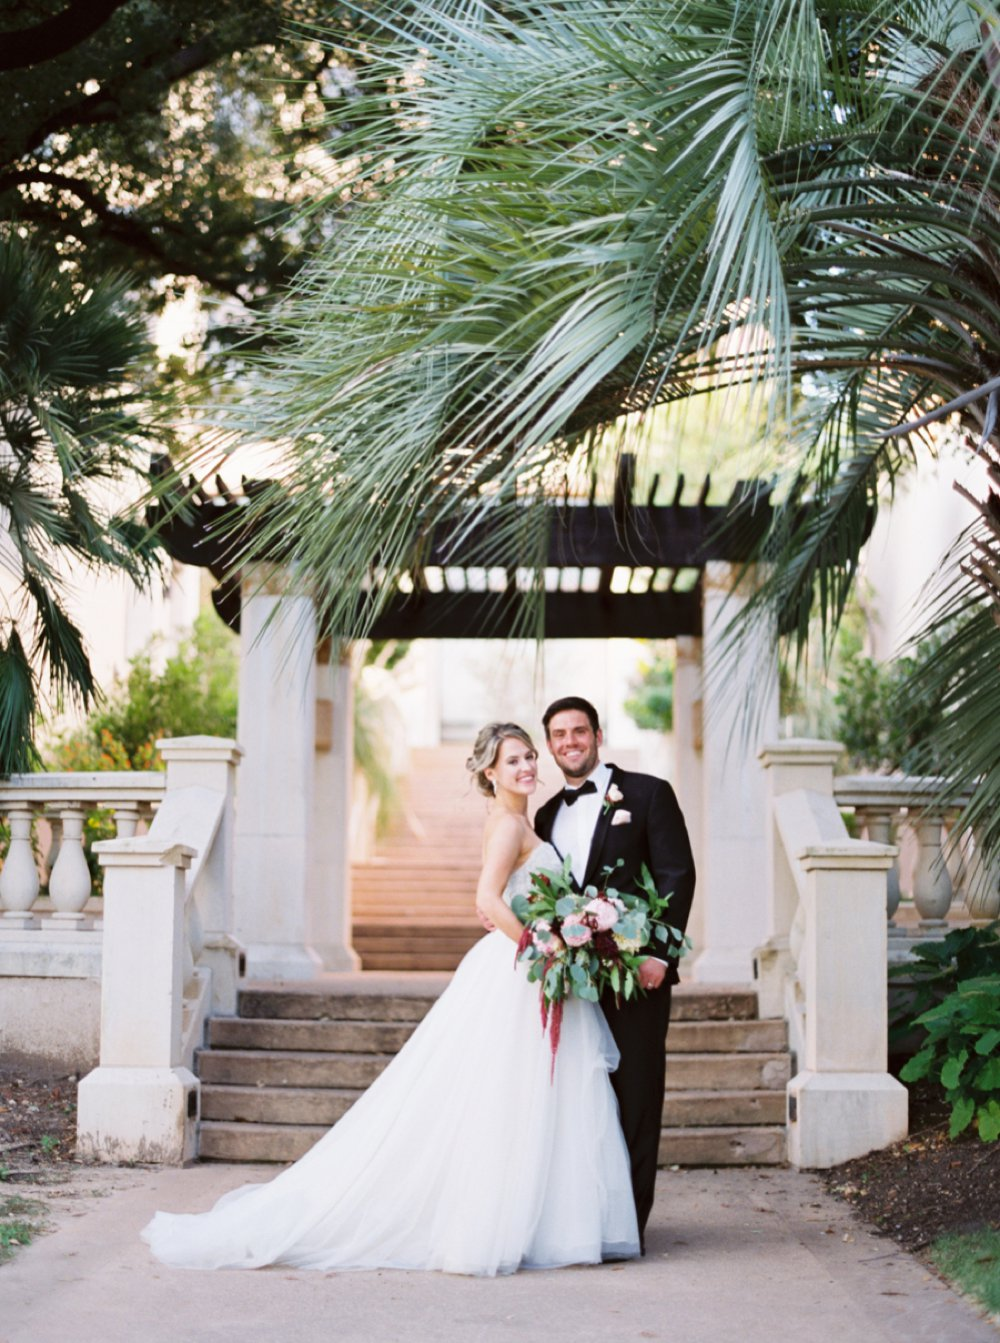 austin wedding photographer jenna mcelroy.jpg